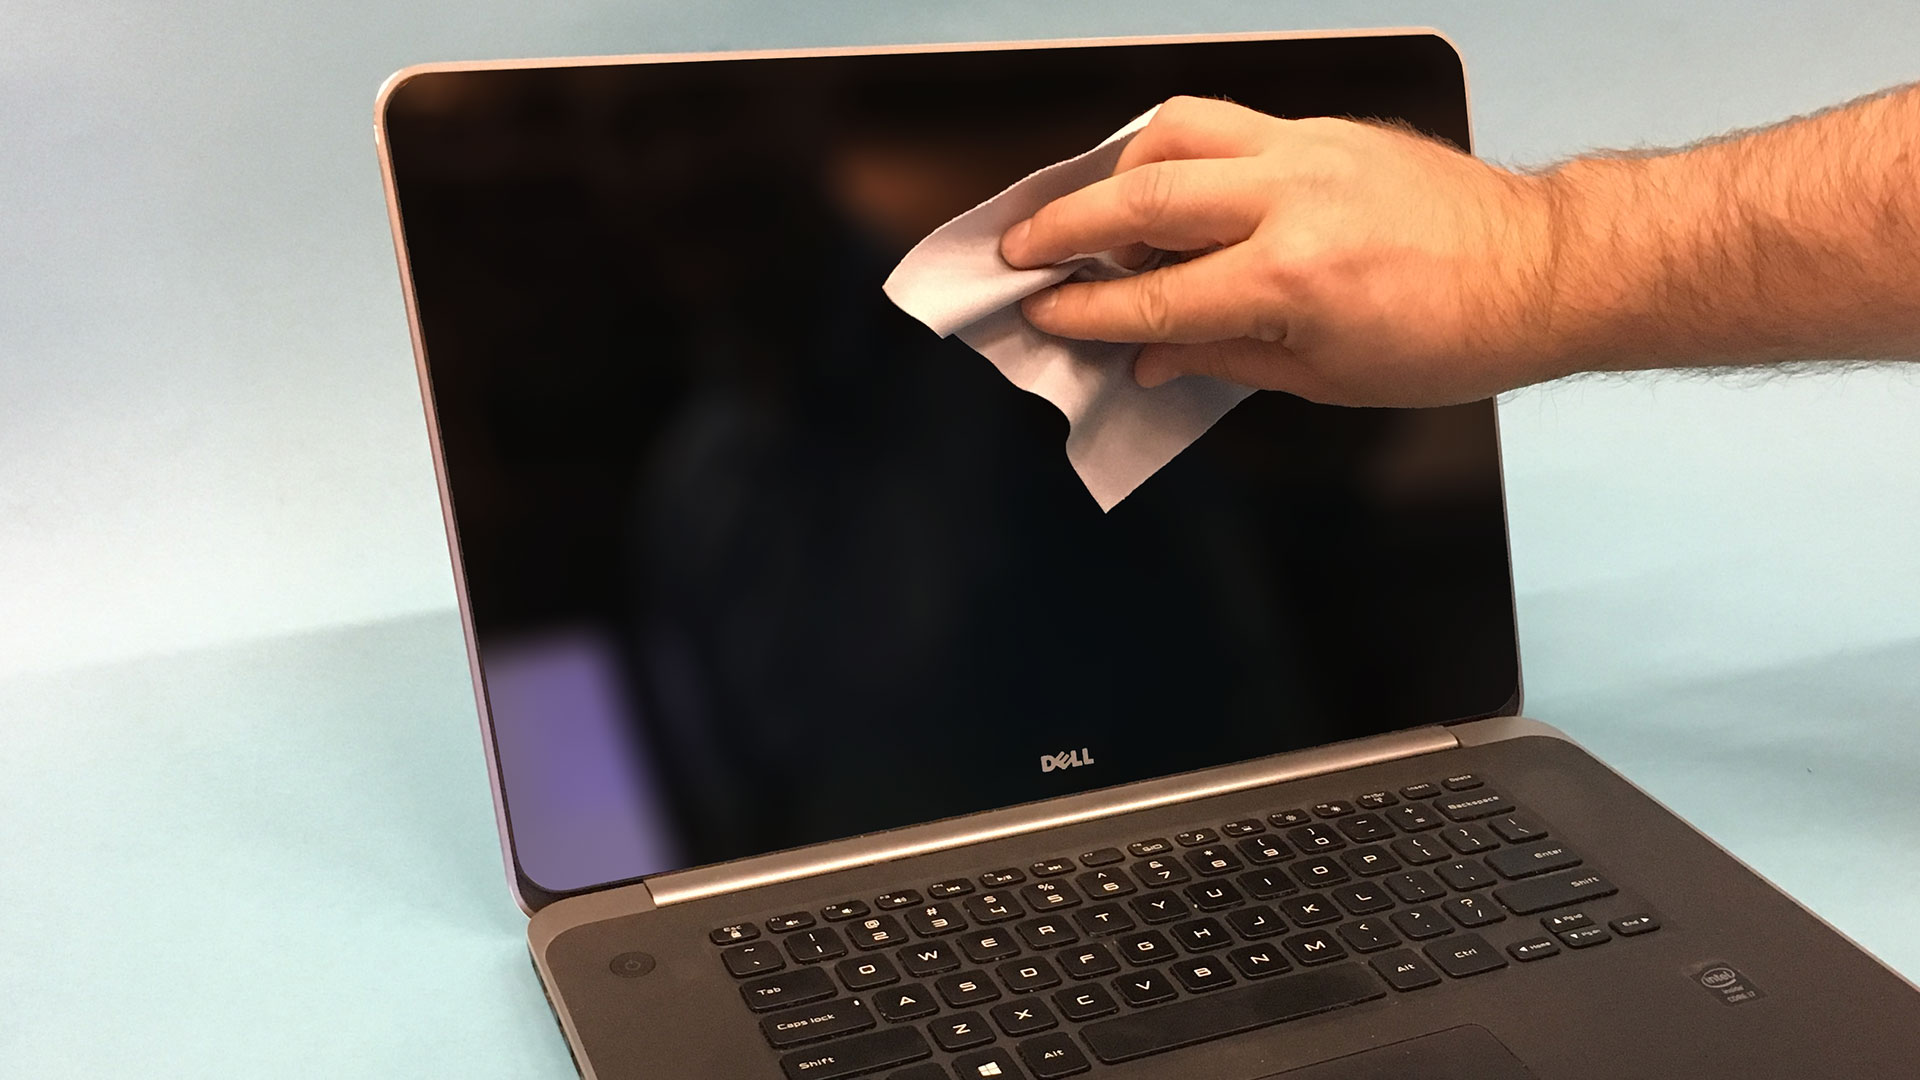 How to clean your laptop in a few quick steps